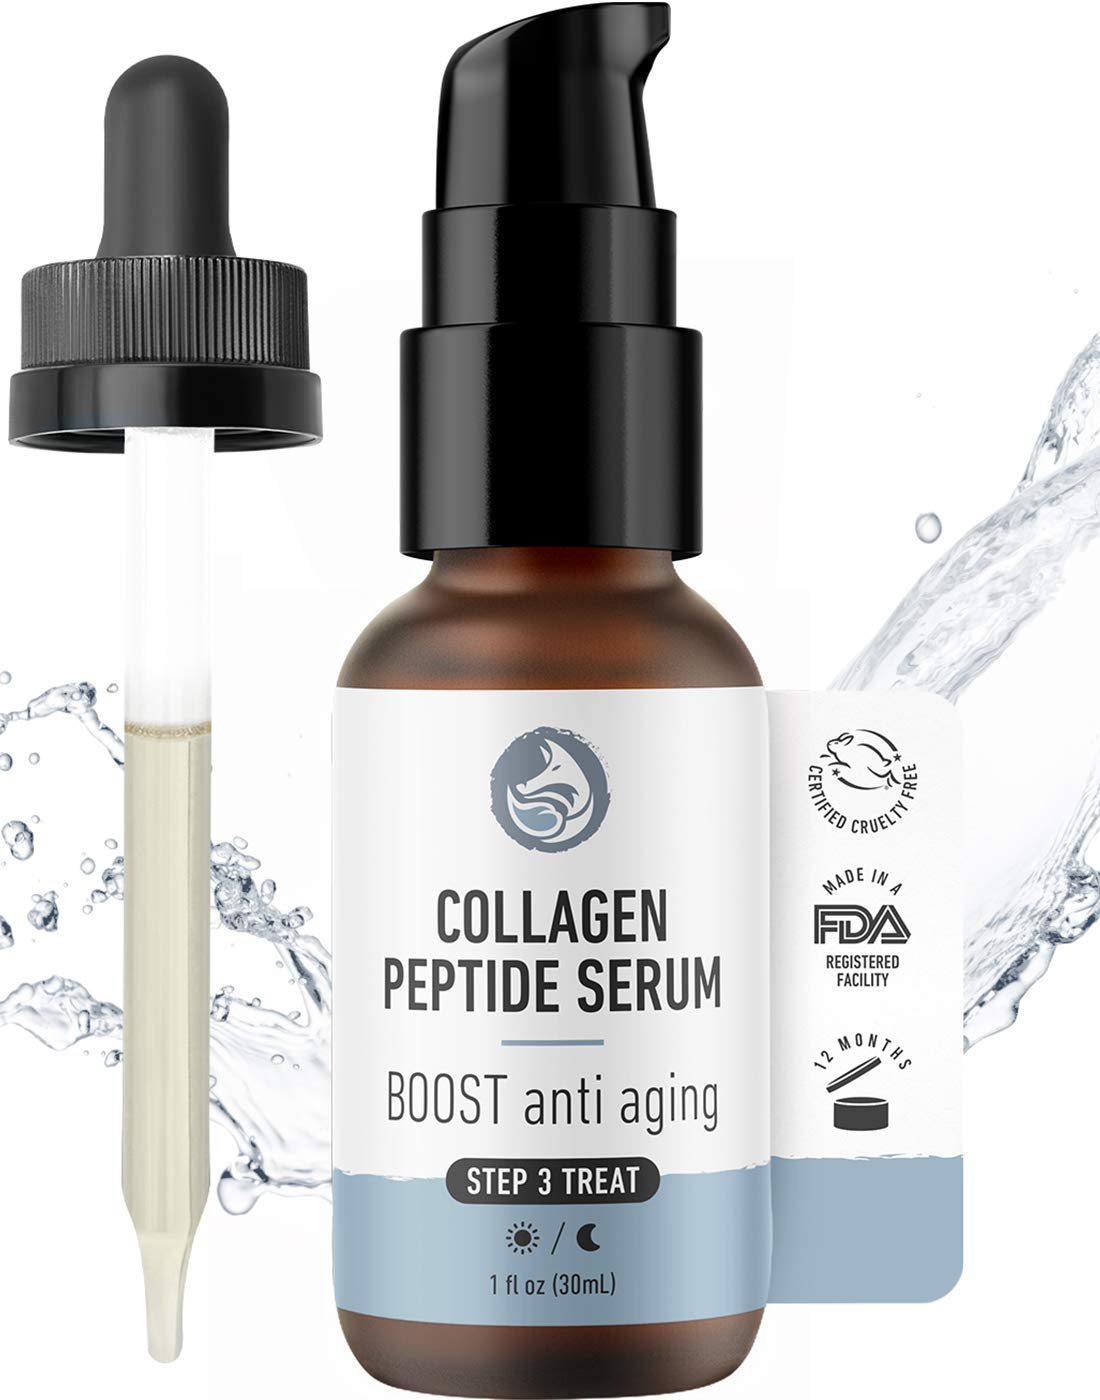 Collagen Peptide Complex Face Serum - Tighten, Firm & Smooth - Advanced Natural & Organic Anti-Aging Facial Formulation by Foxbrim Naturals 1oz